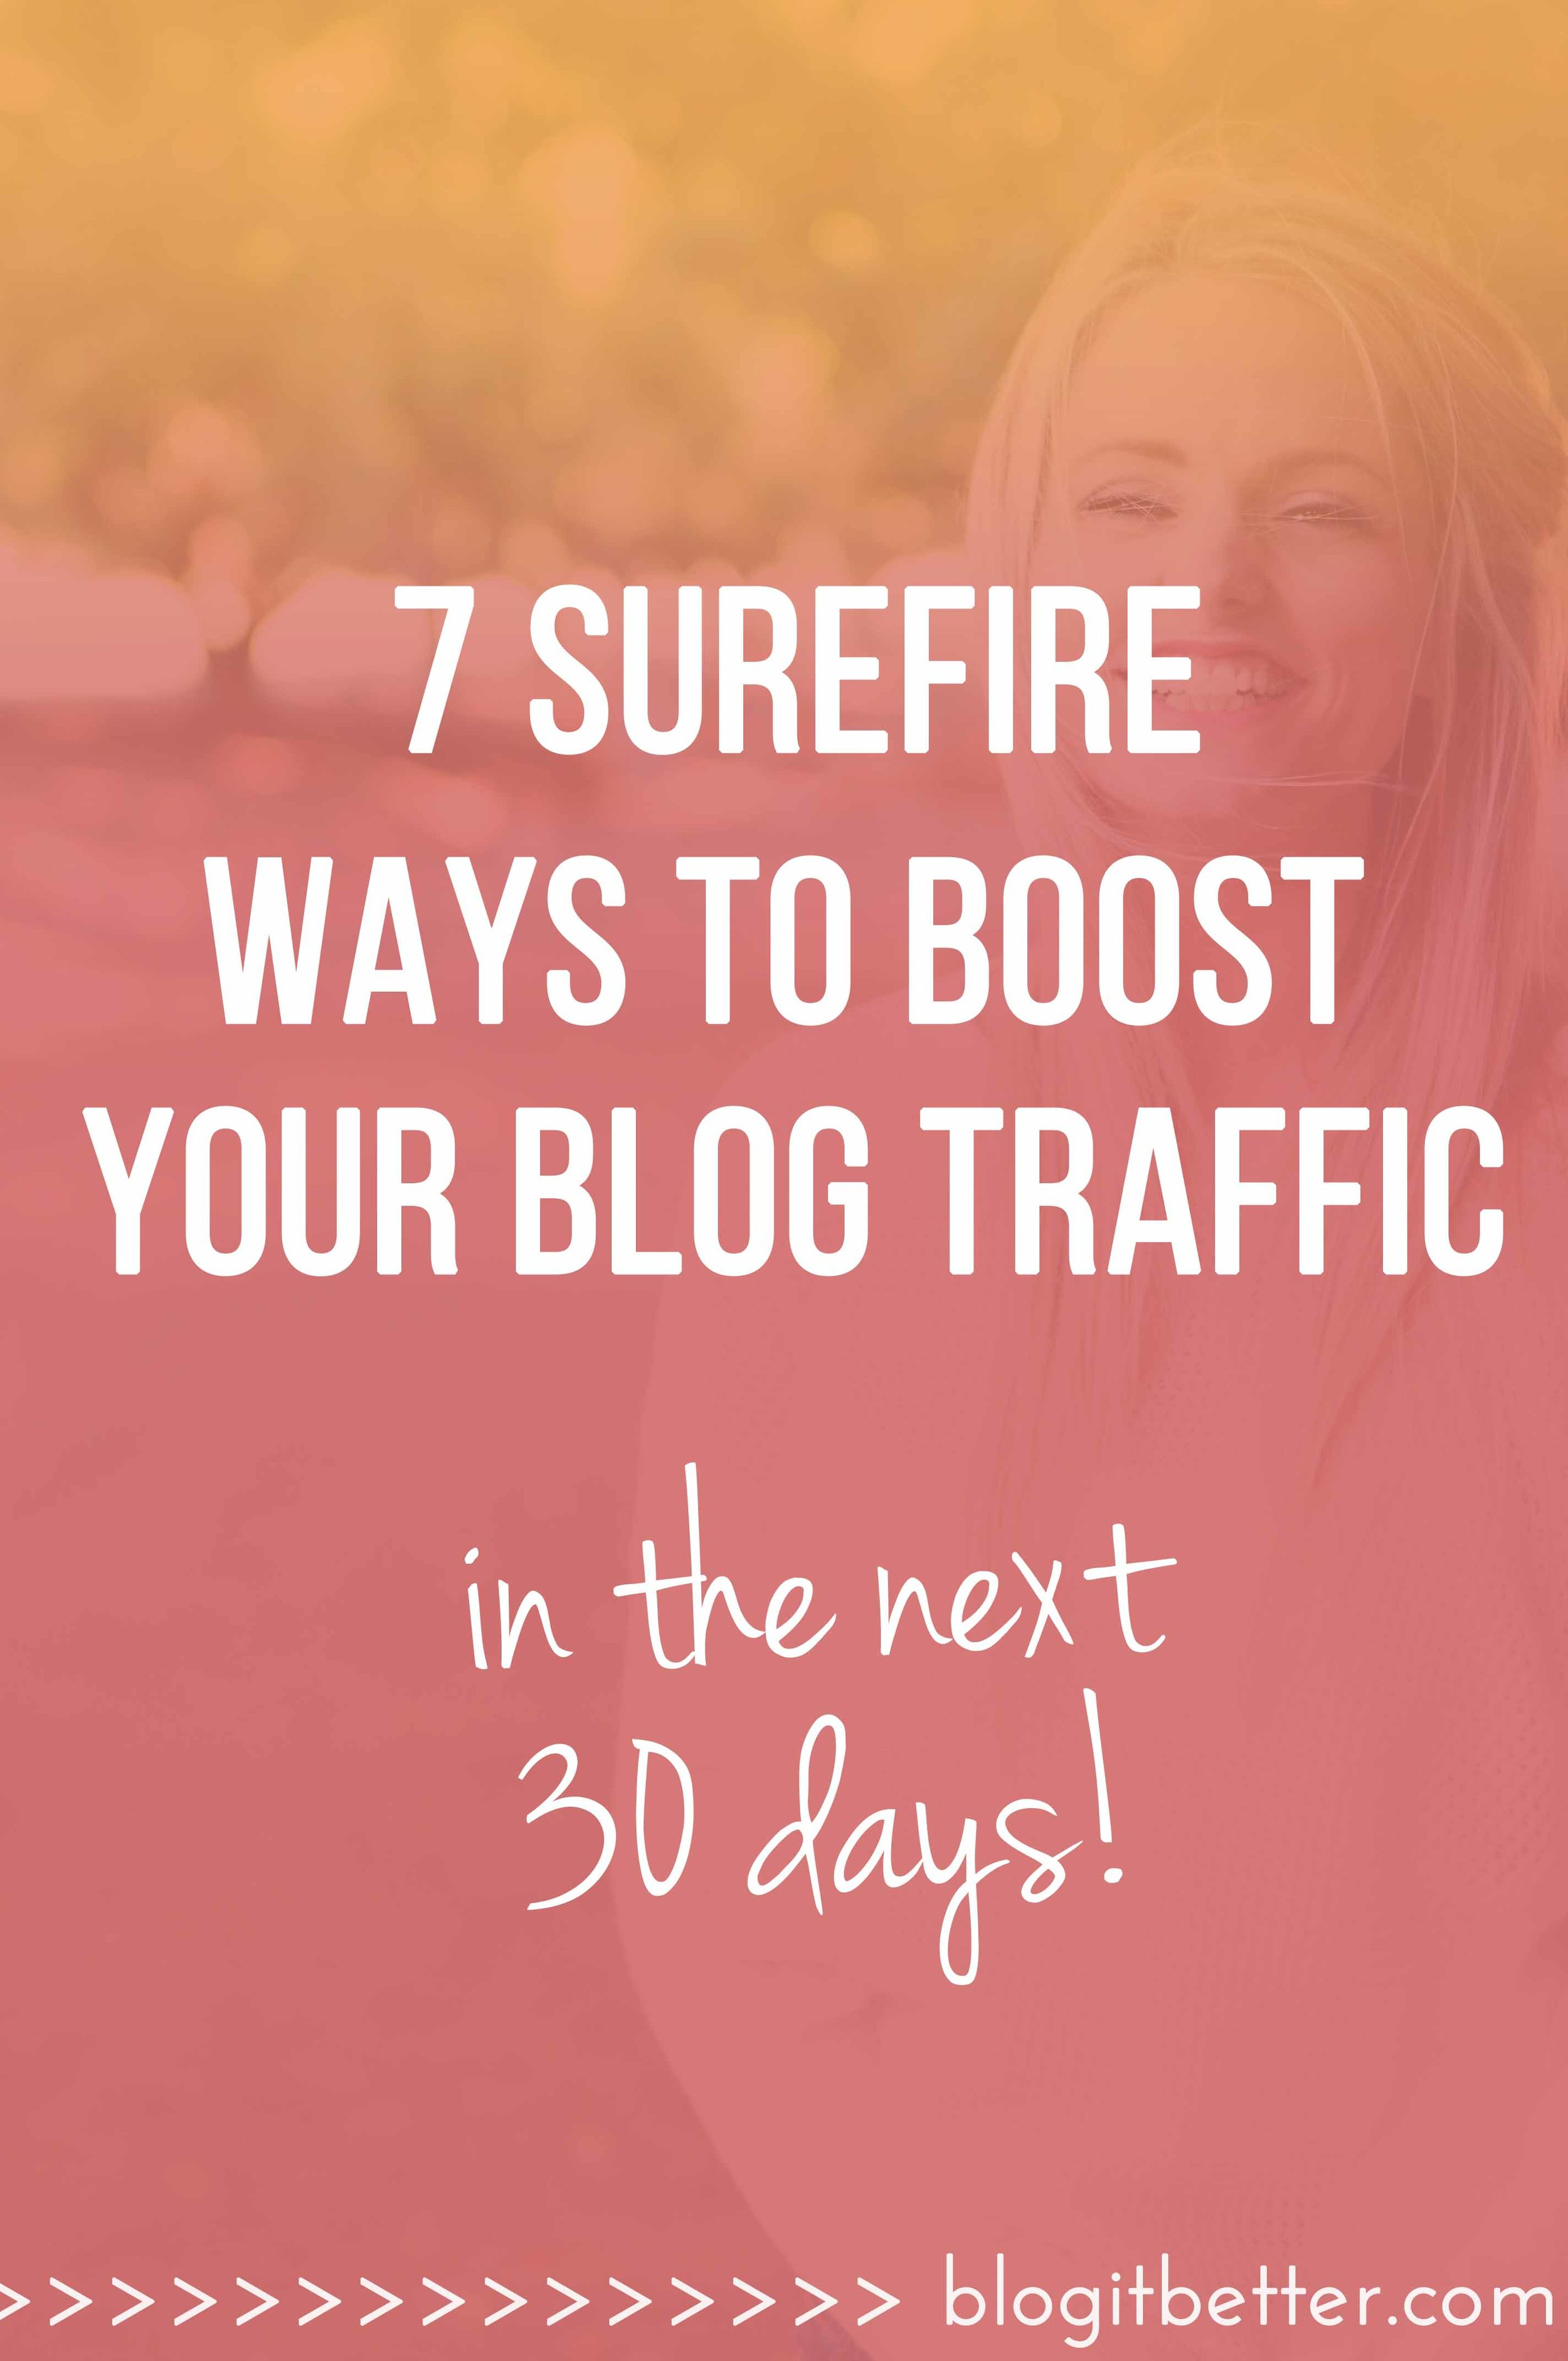 7 Surefire Ways to Double Your Blog Traffic in The Next 30 days! Blog it Better